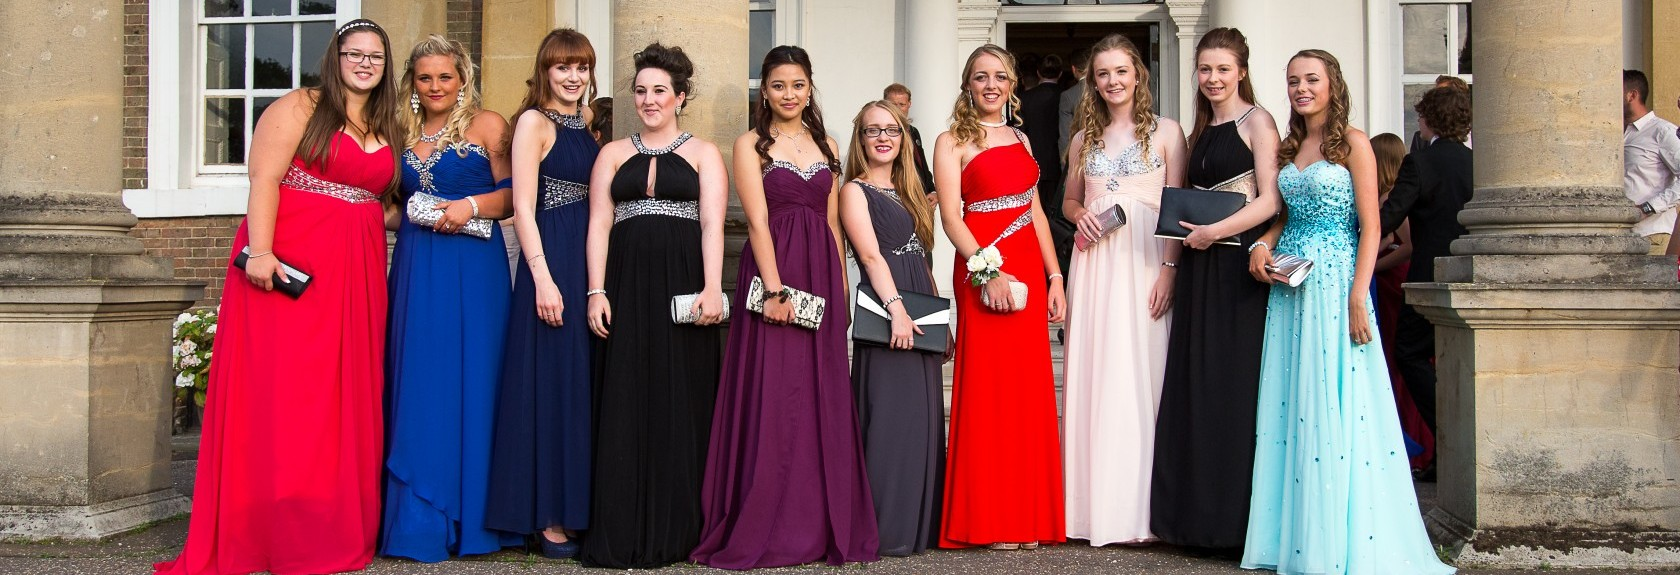 School Prom Photography, Essex